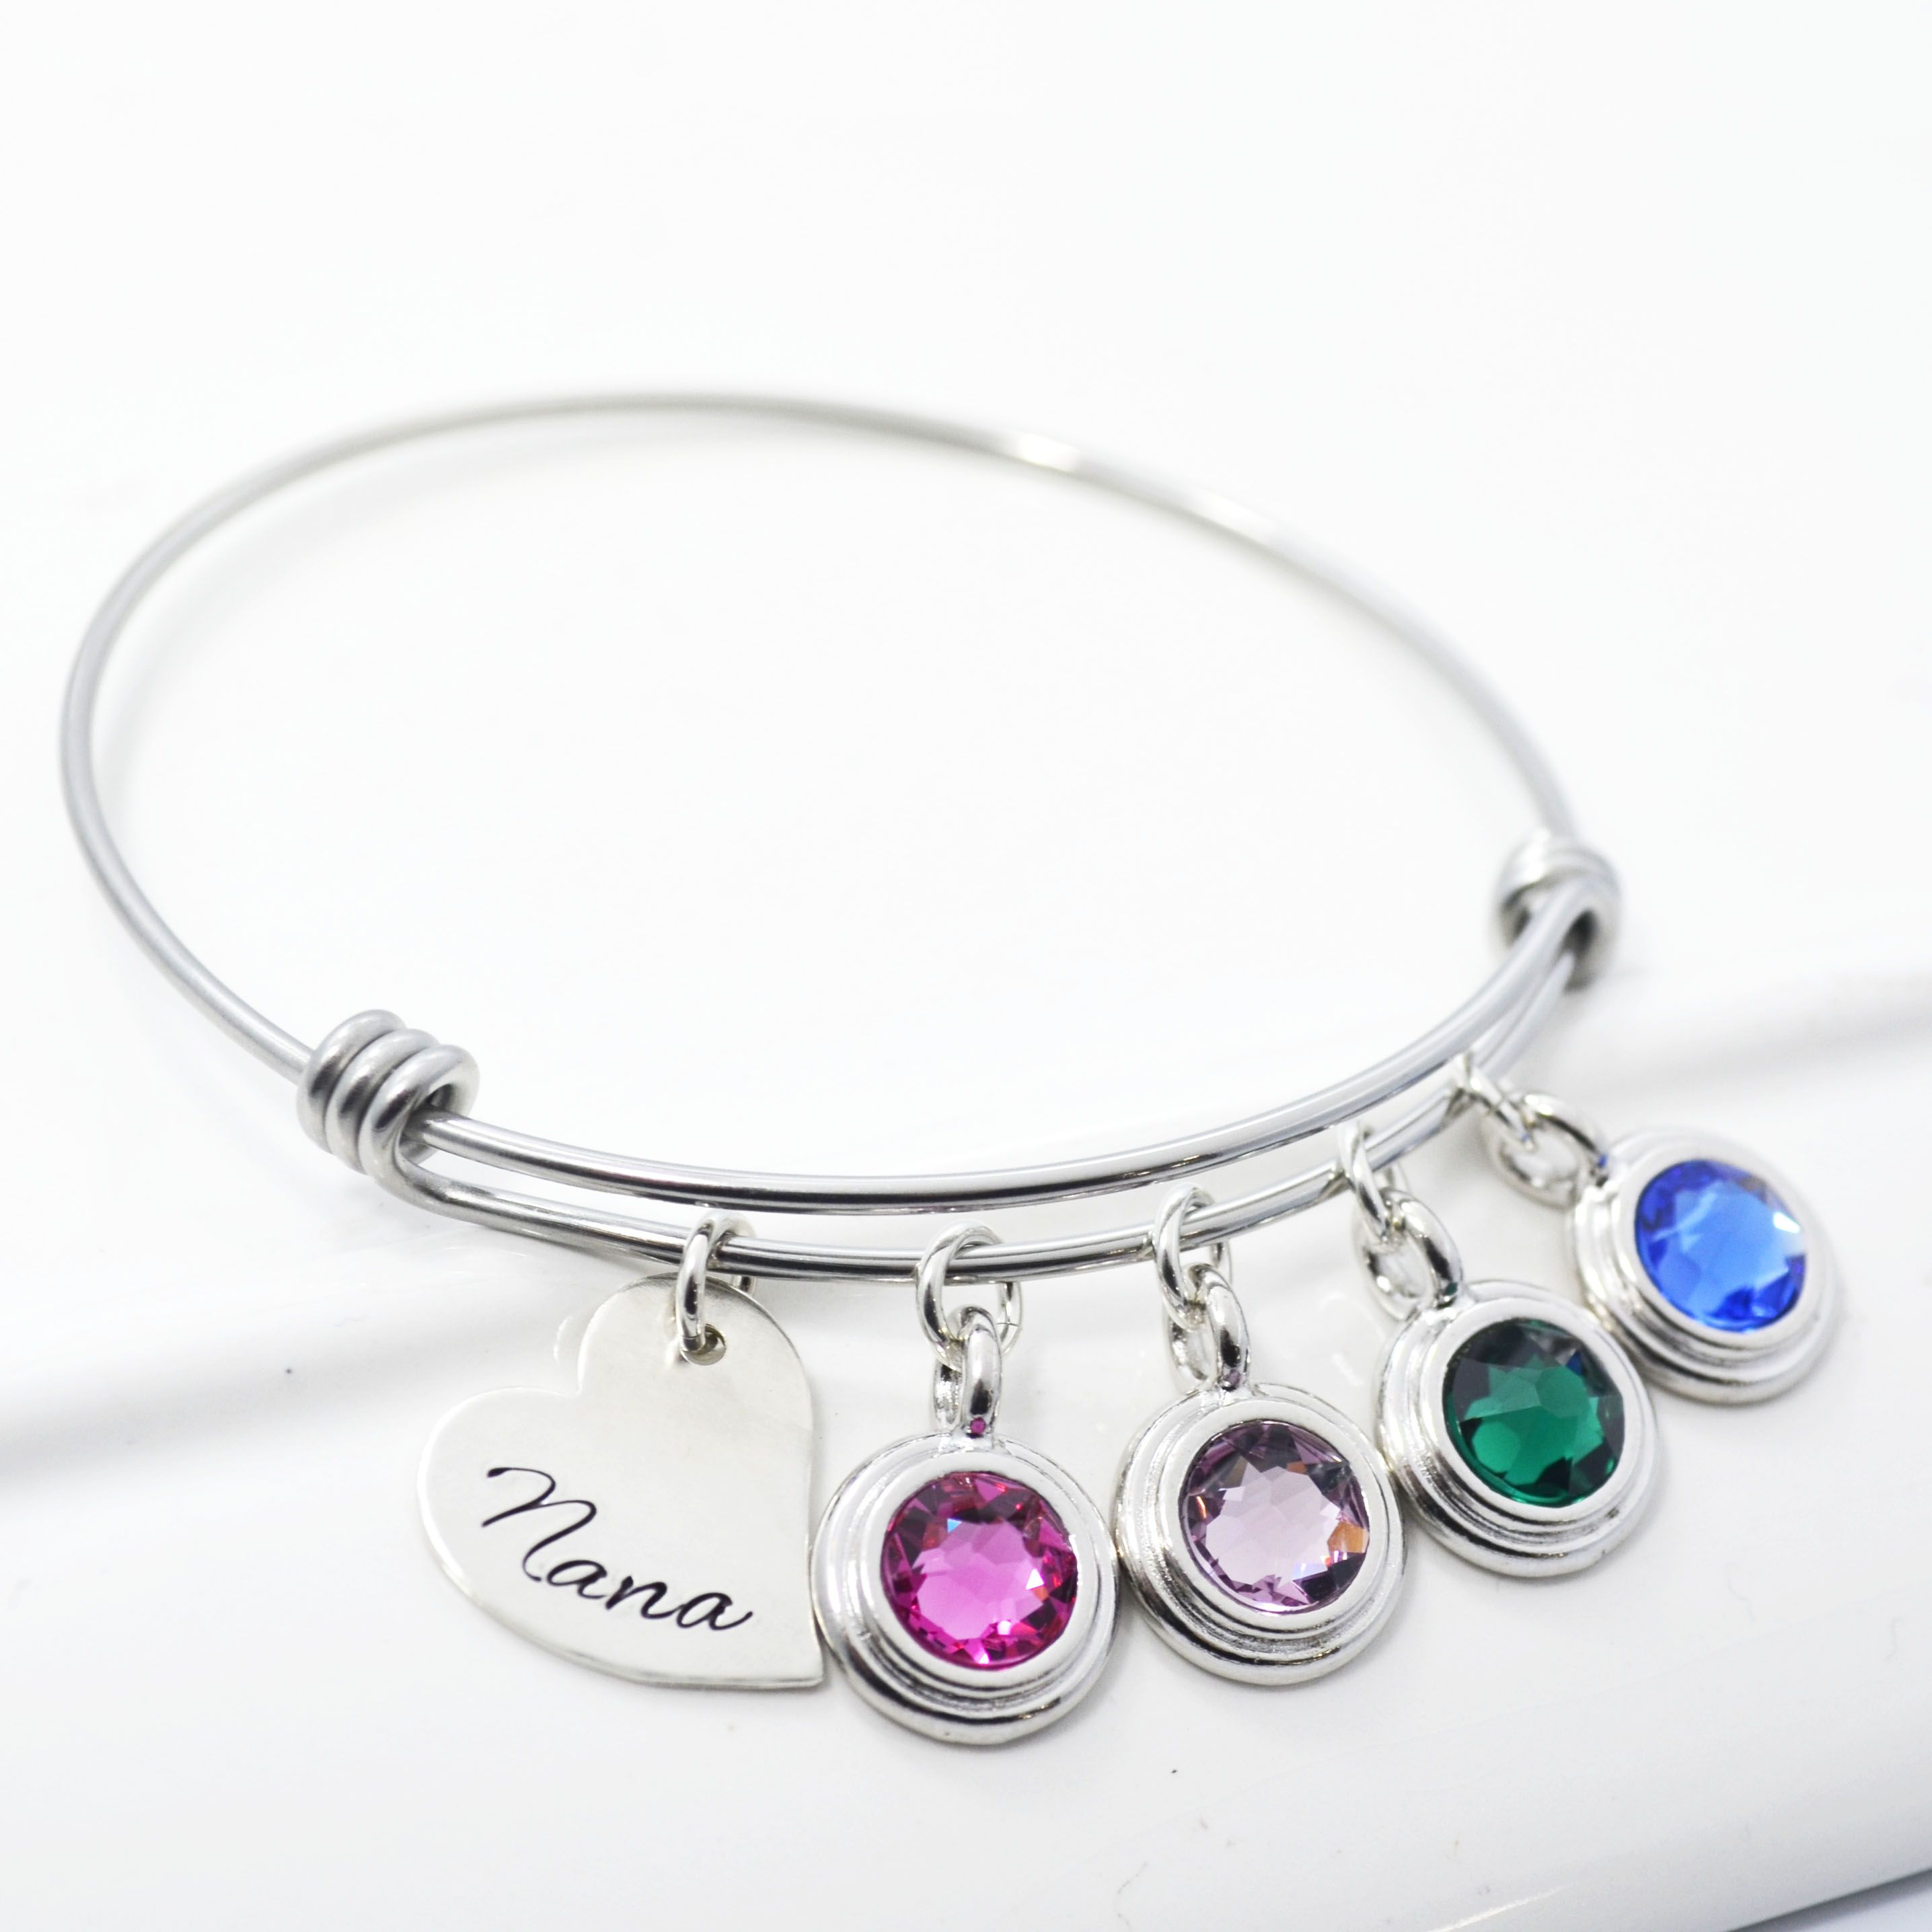 zoom listing mother bracelet daughter personalized il fullxfull jewelry au